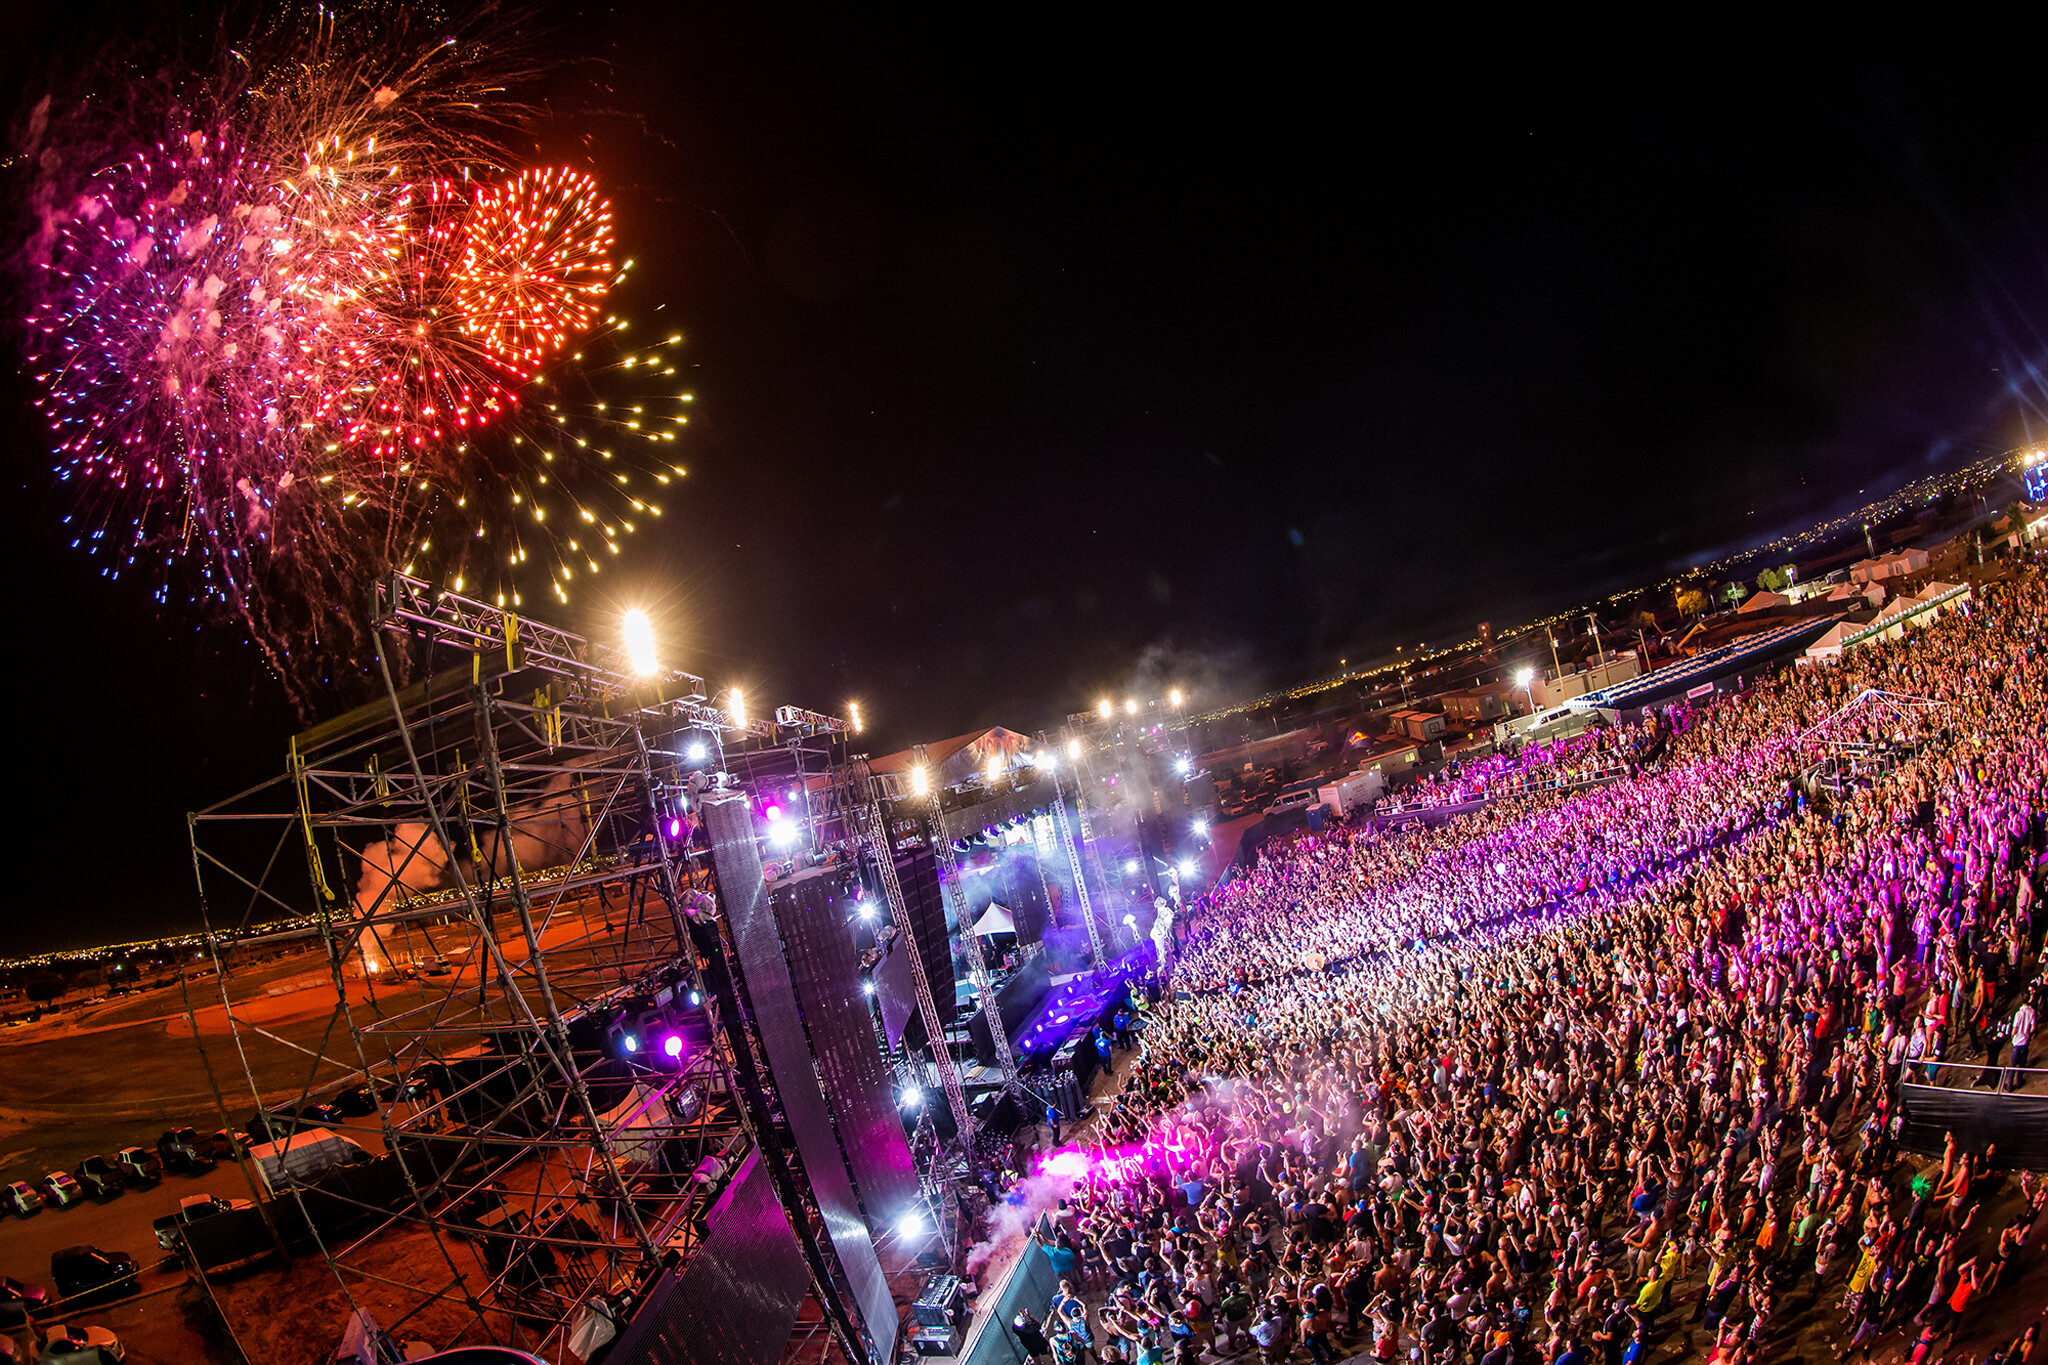 Fireworks over main stage at Sun City Music Festival 2014